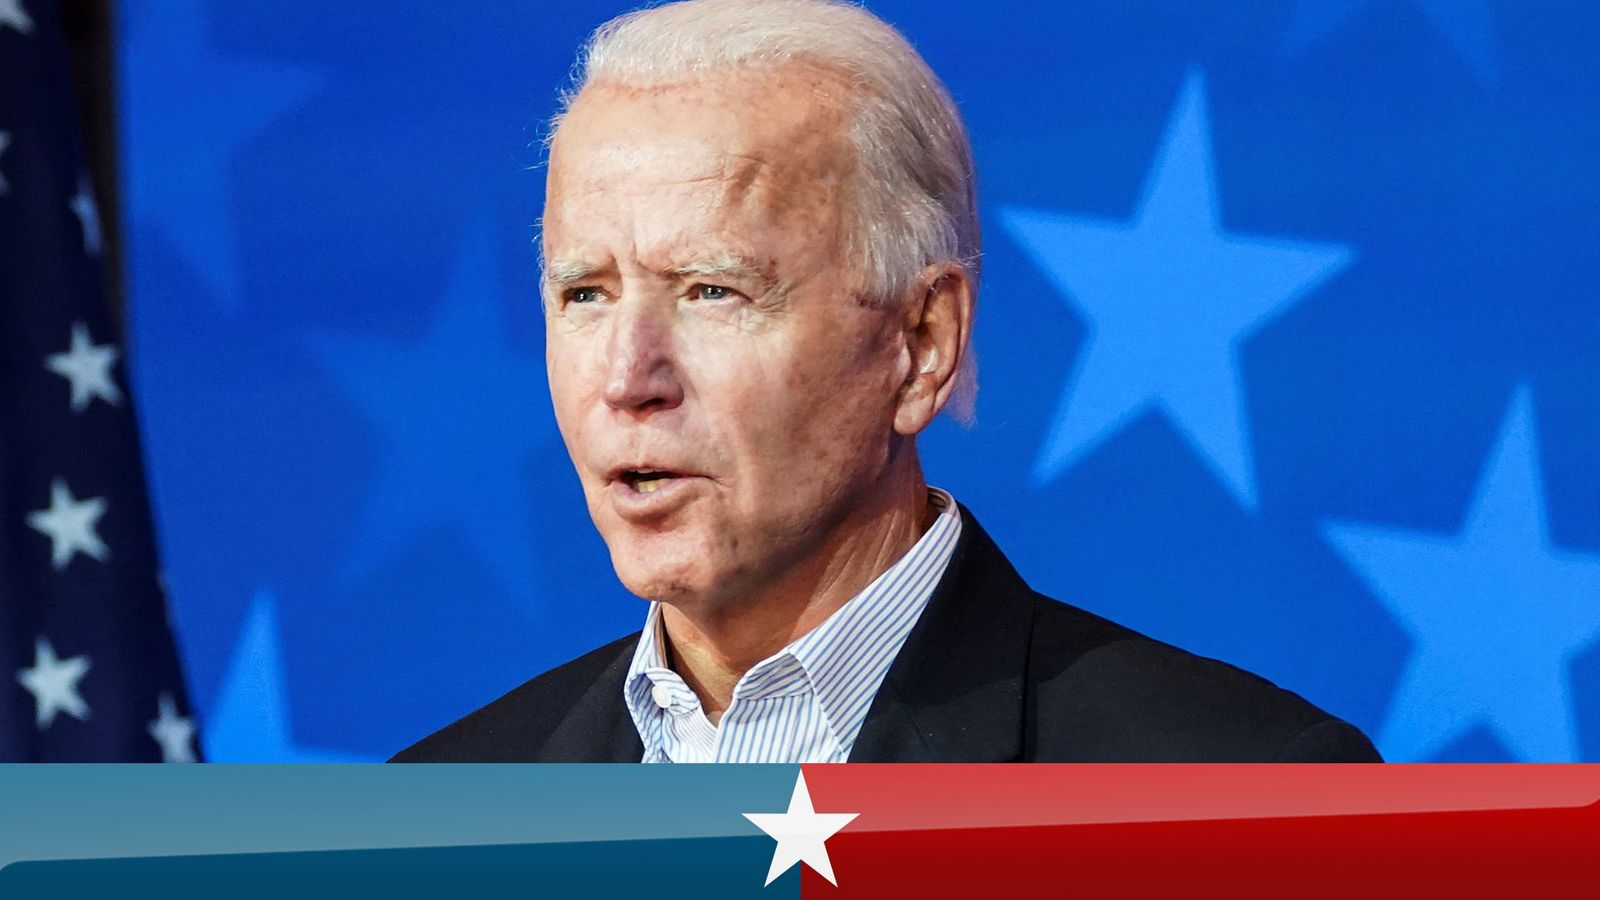 US election 2020 live: Biden waits despite growing presence in key states – Trump recommends legal action |  U.S. News